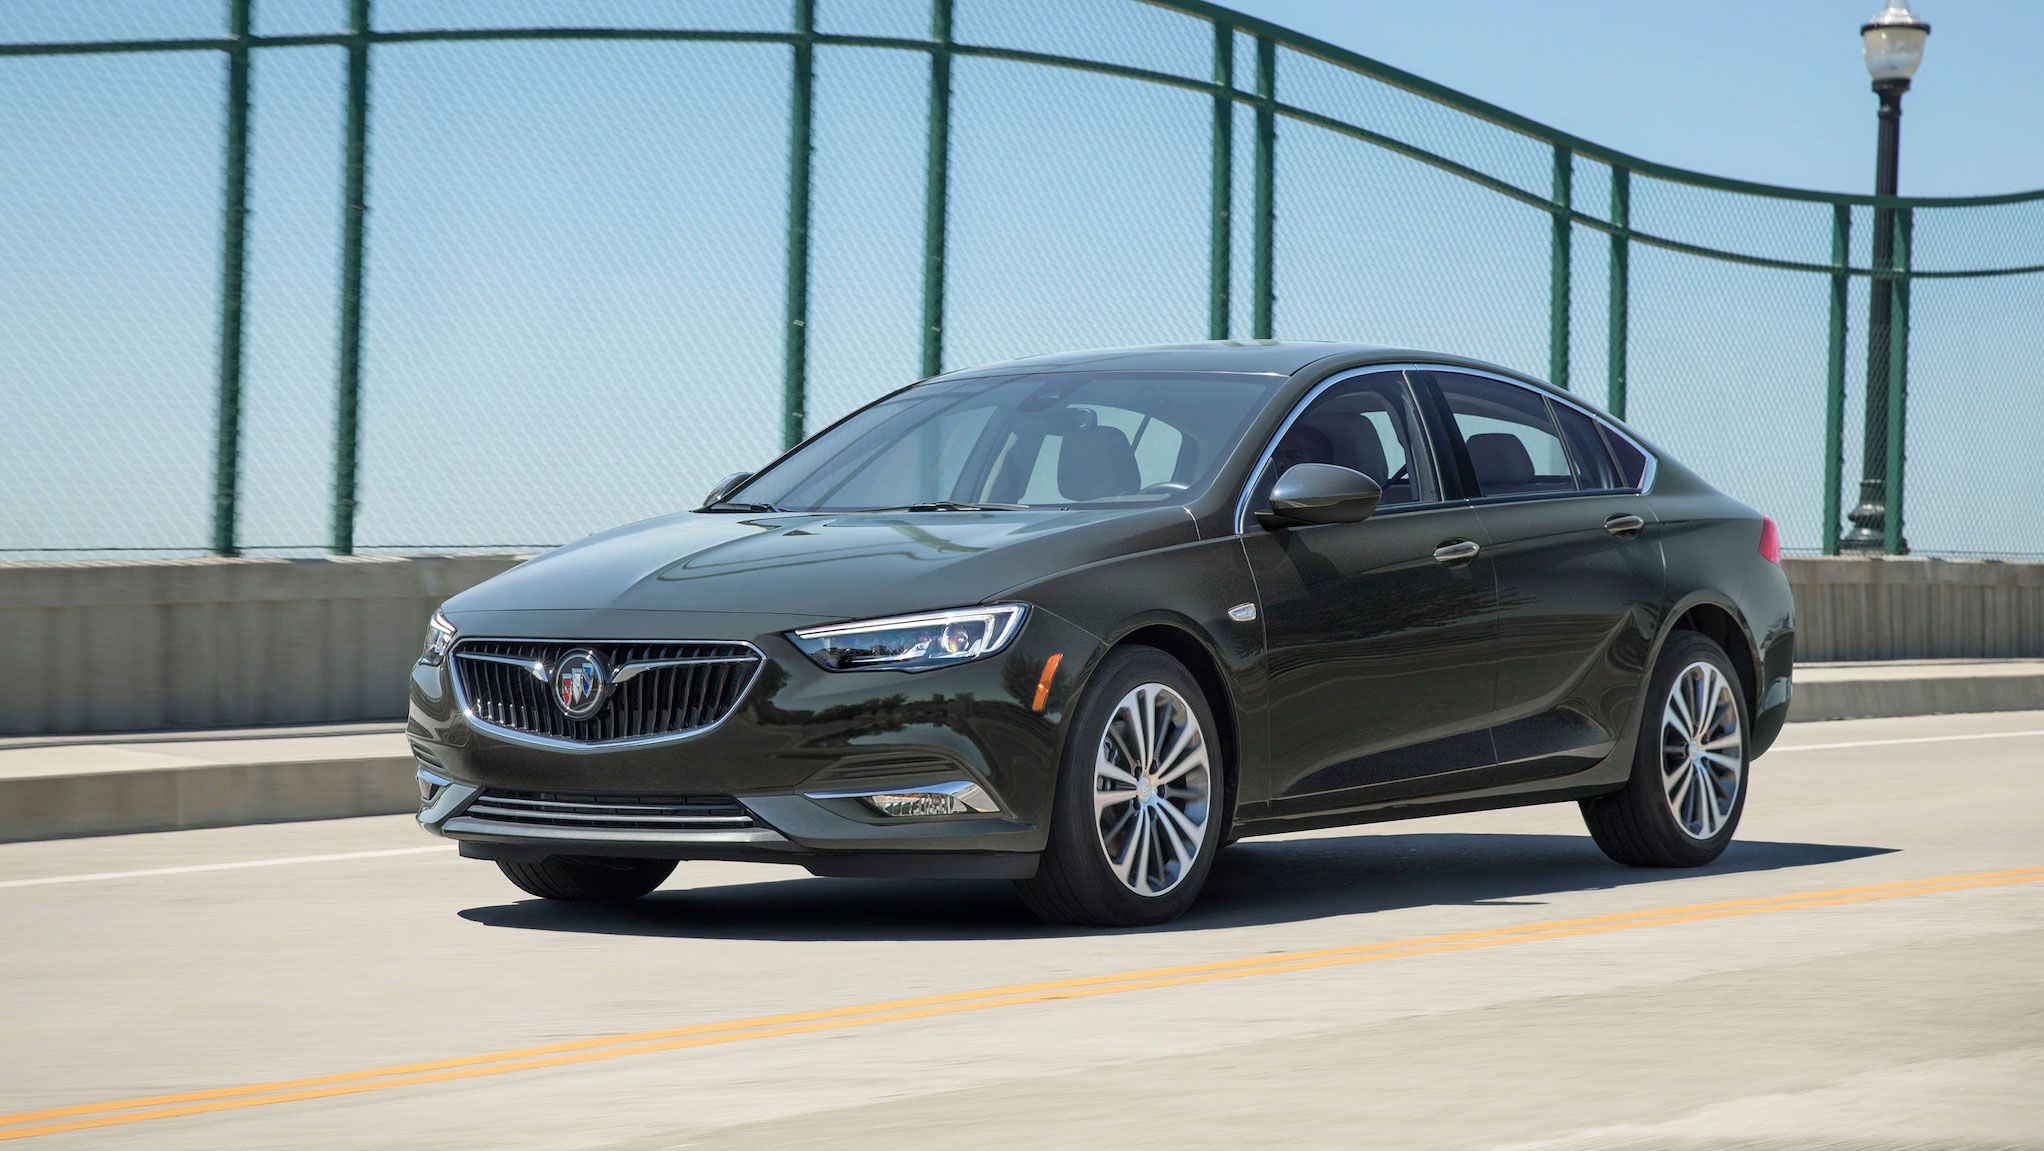 2020 Buick Regal Sportback Review, Pricing, And Specs New 2021 Buick Regal Gs Price, Review, 0-60